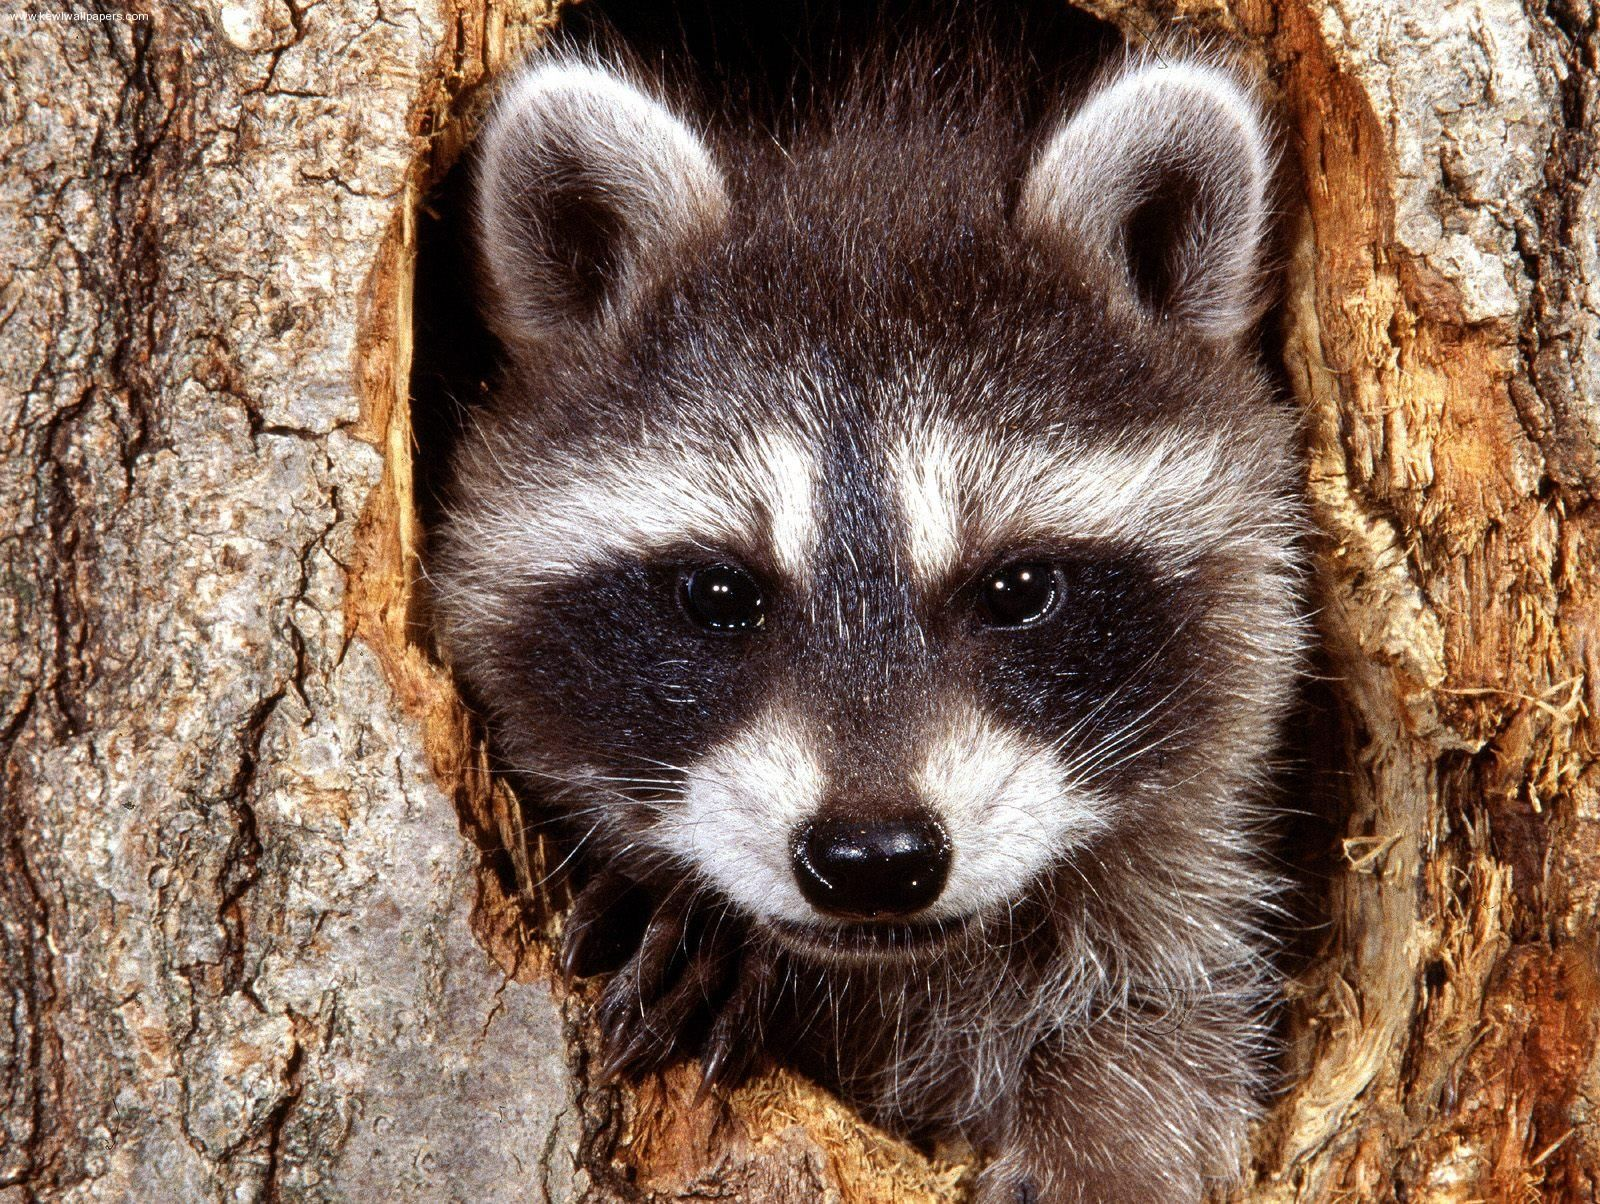 Google Image Result For Http Www Free Pet Wallpapers Com Free Pet Wallpapers Free Pet Desktop Backgrounds 665227061 Jpg With Images Cute Raccoon Cute Animals Animals